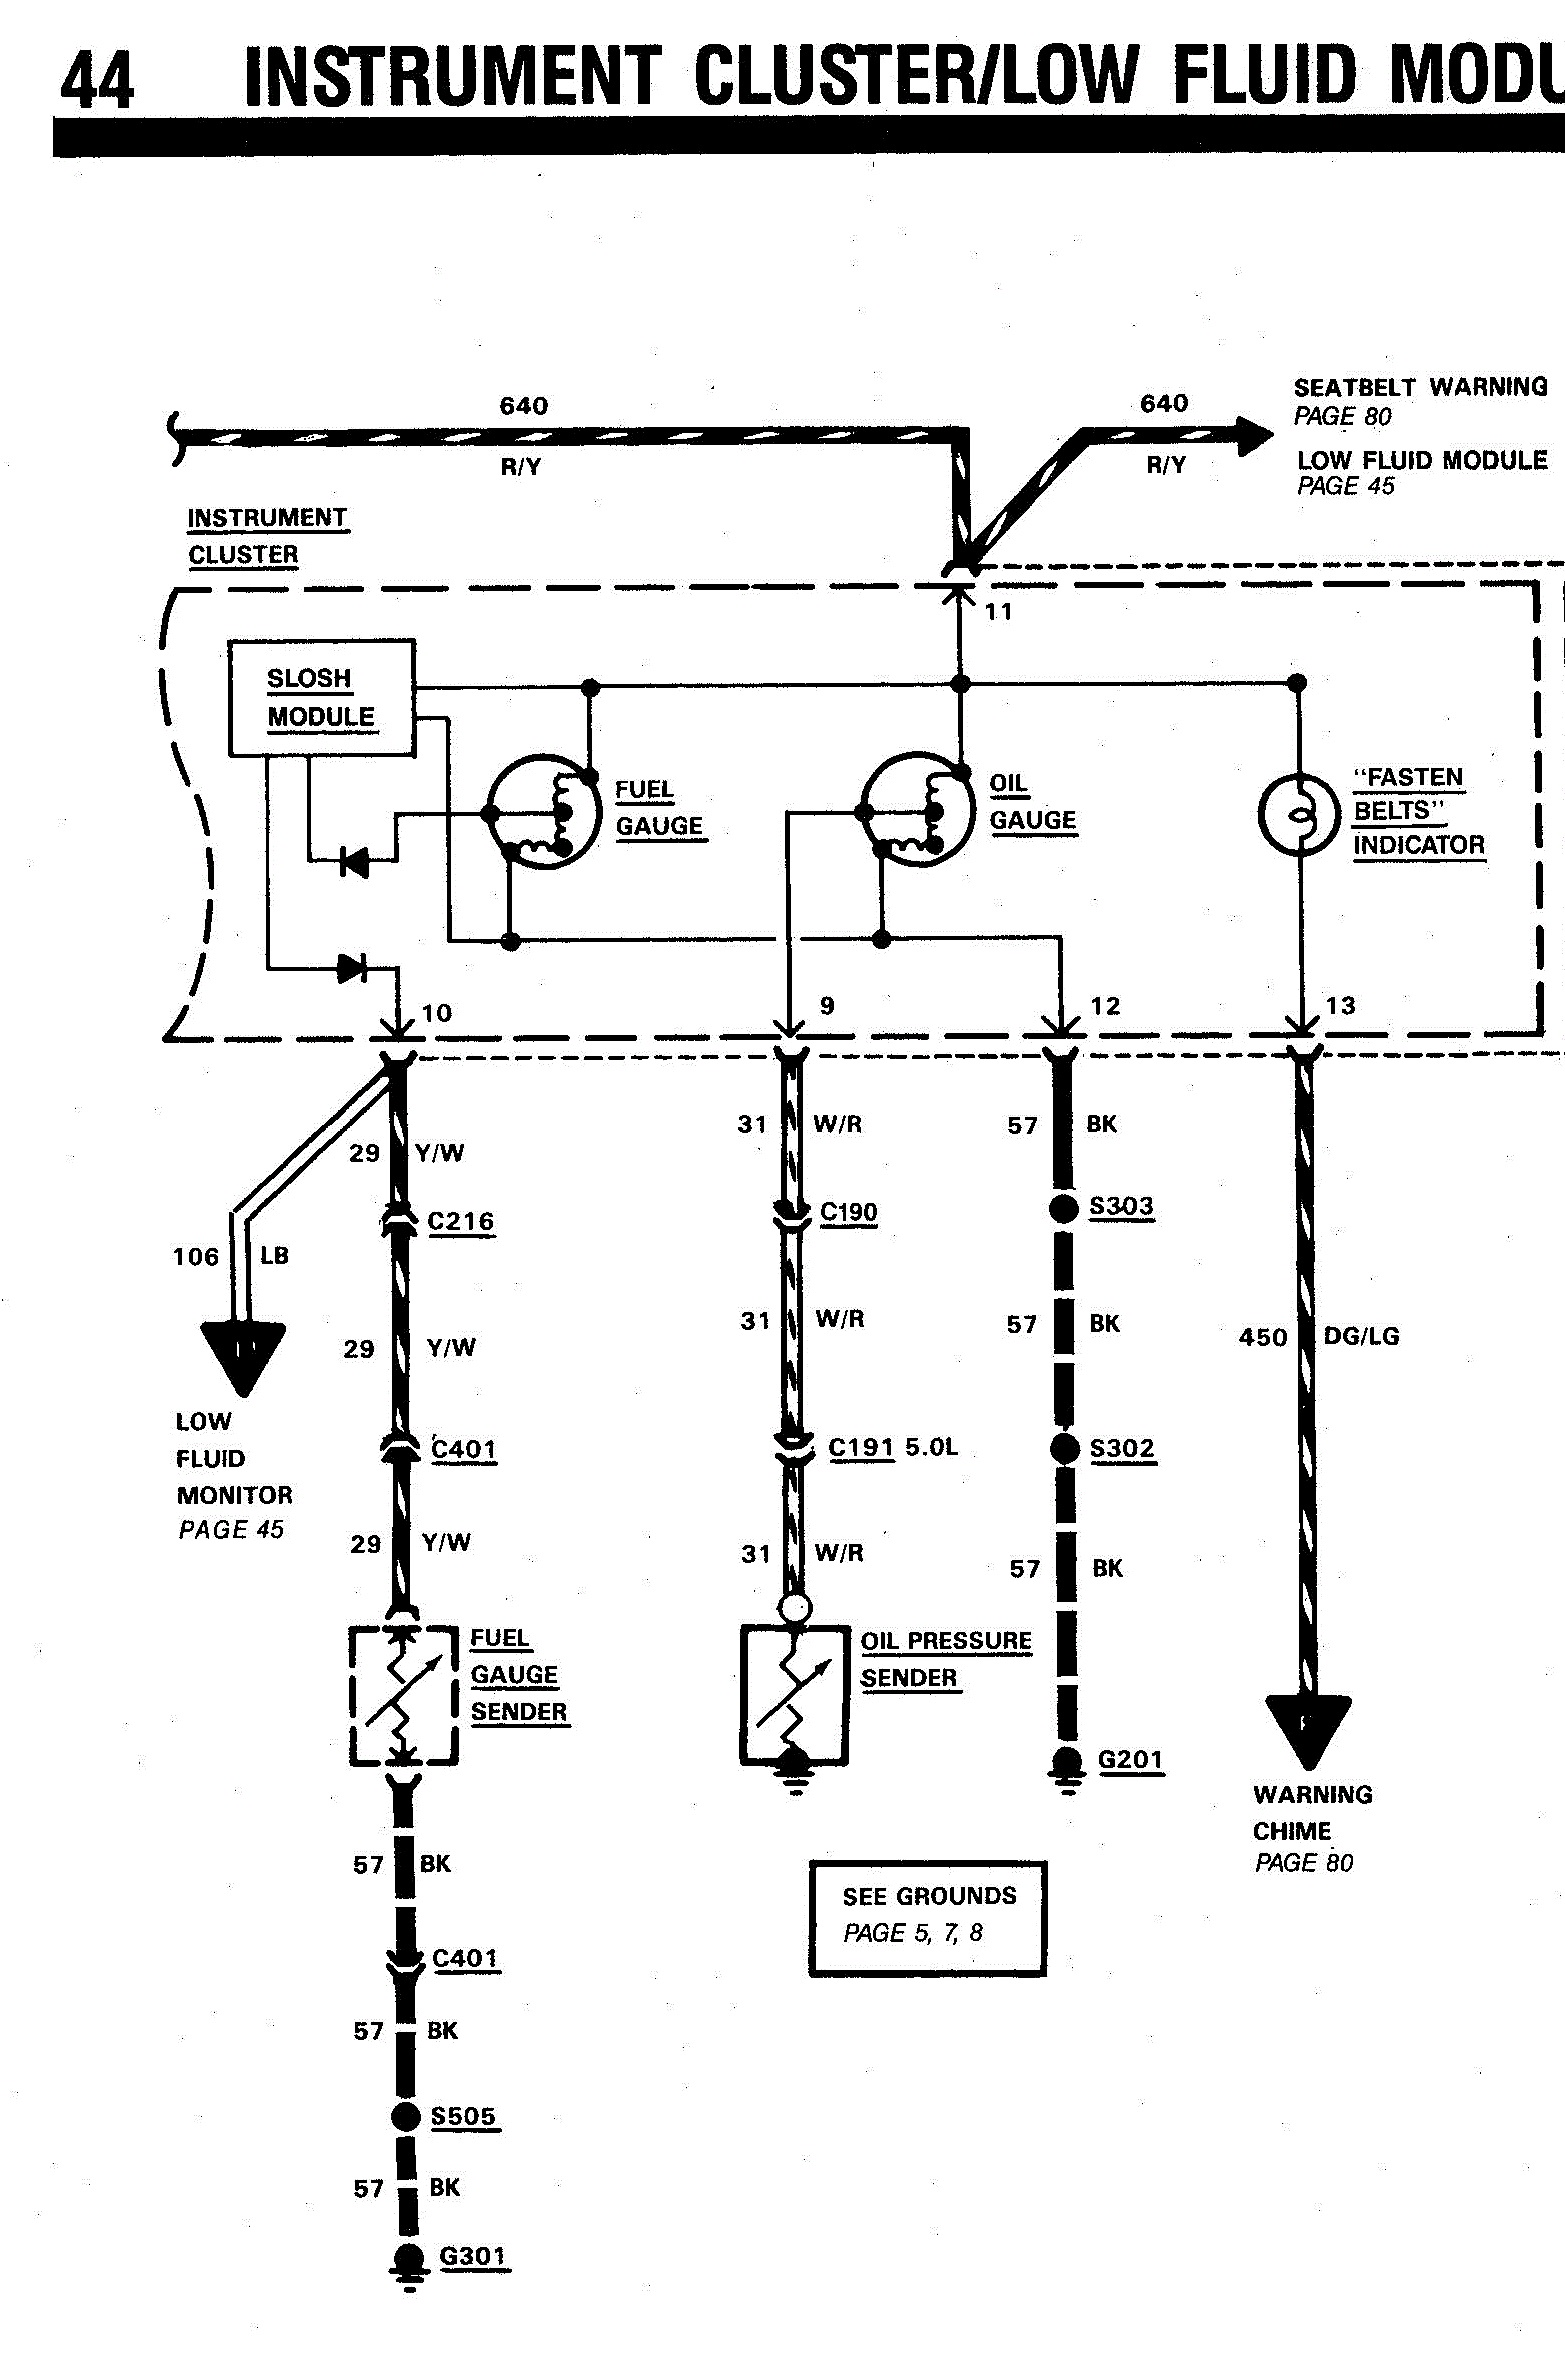 DIAGRAM] Massimo Oil Wiring Diagram FULL Version HD Quality Wiring Diagram  - ELECTROCARDIAGRAM.BELLEILMERSION.FR